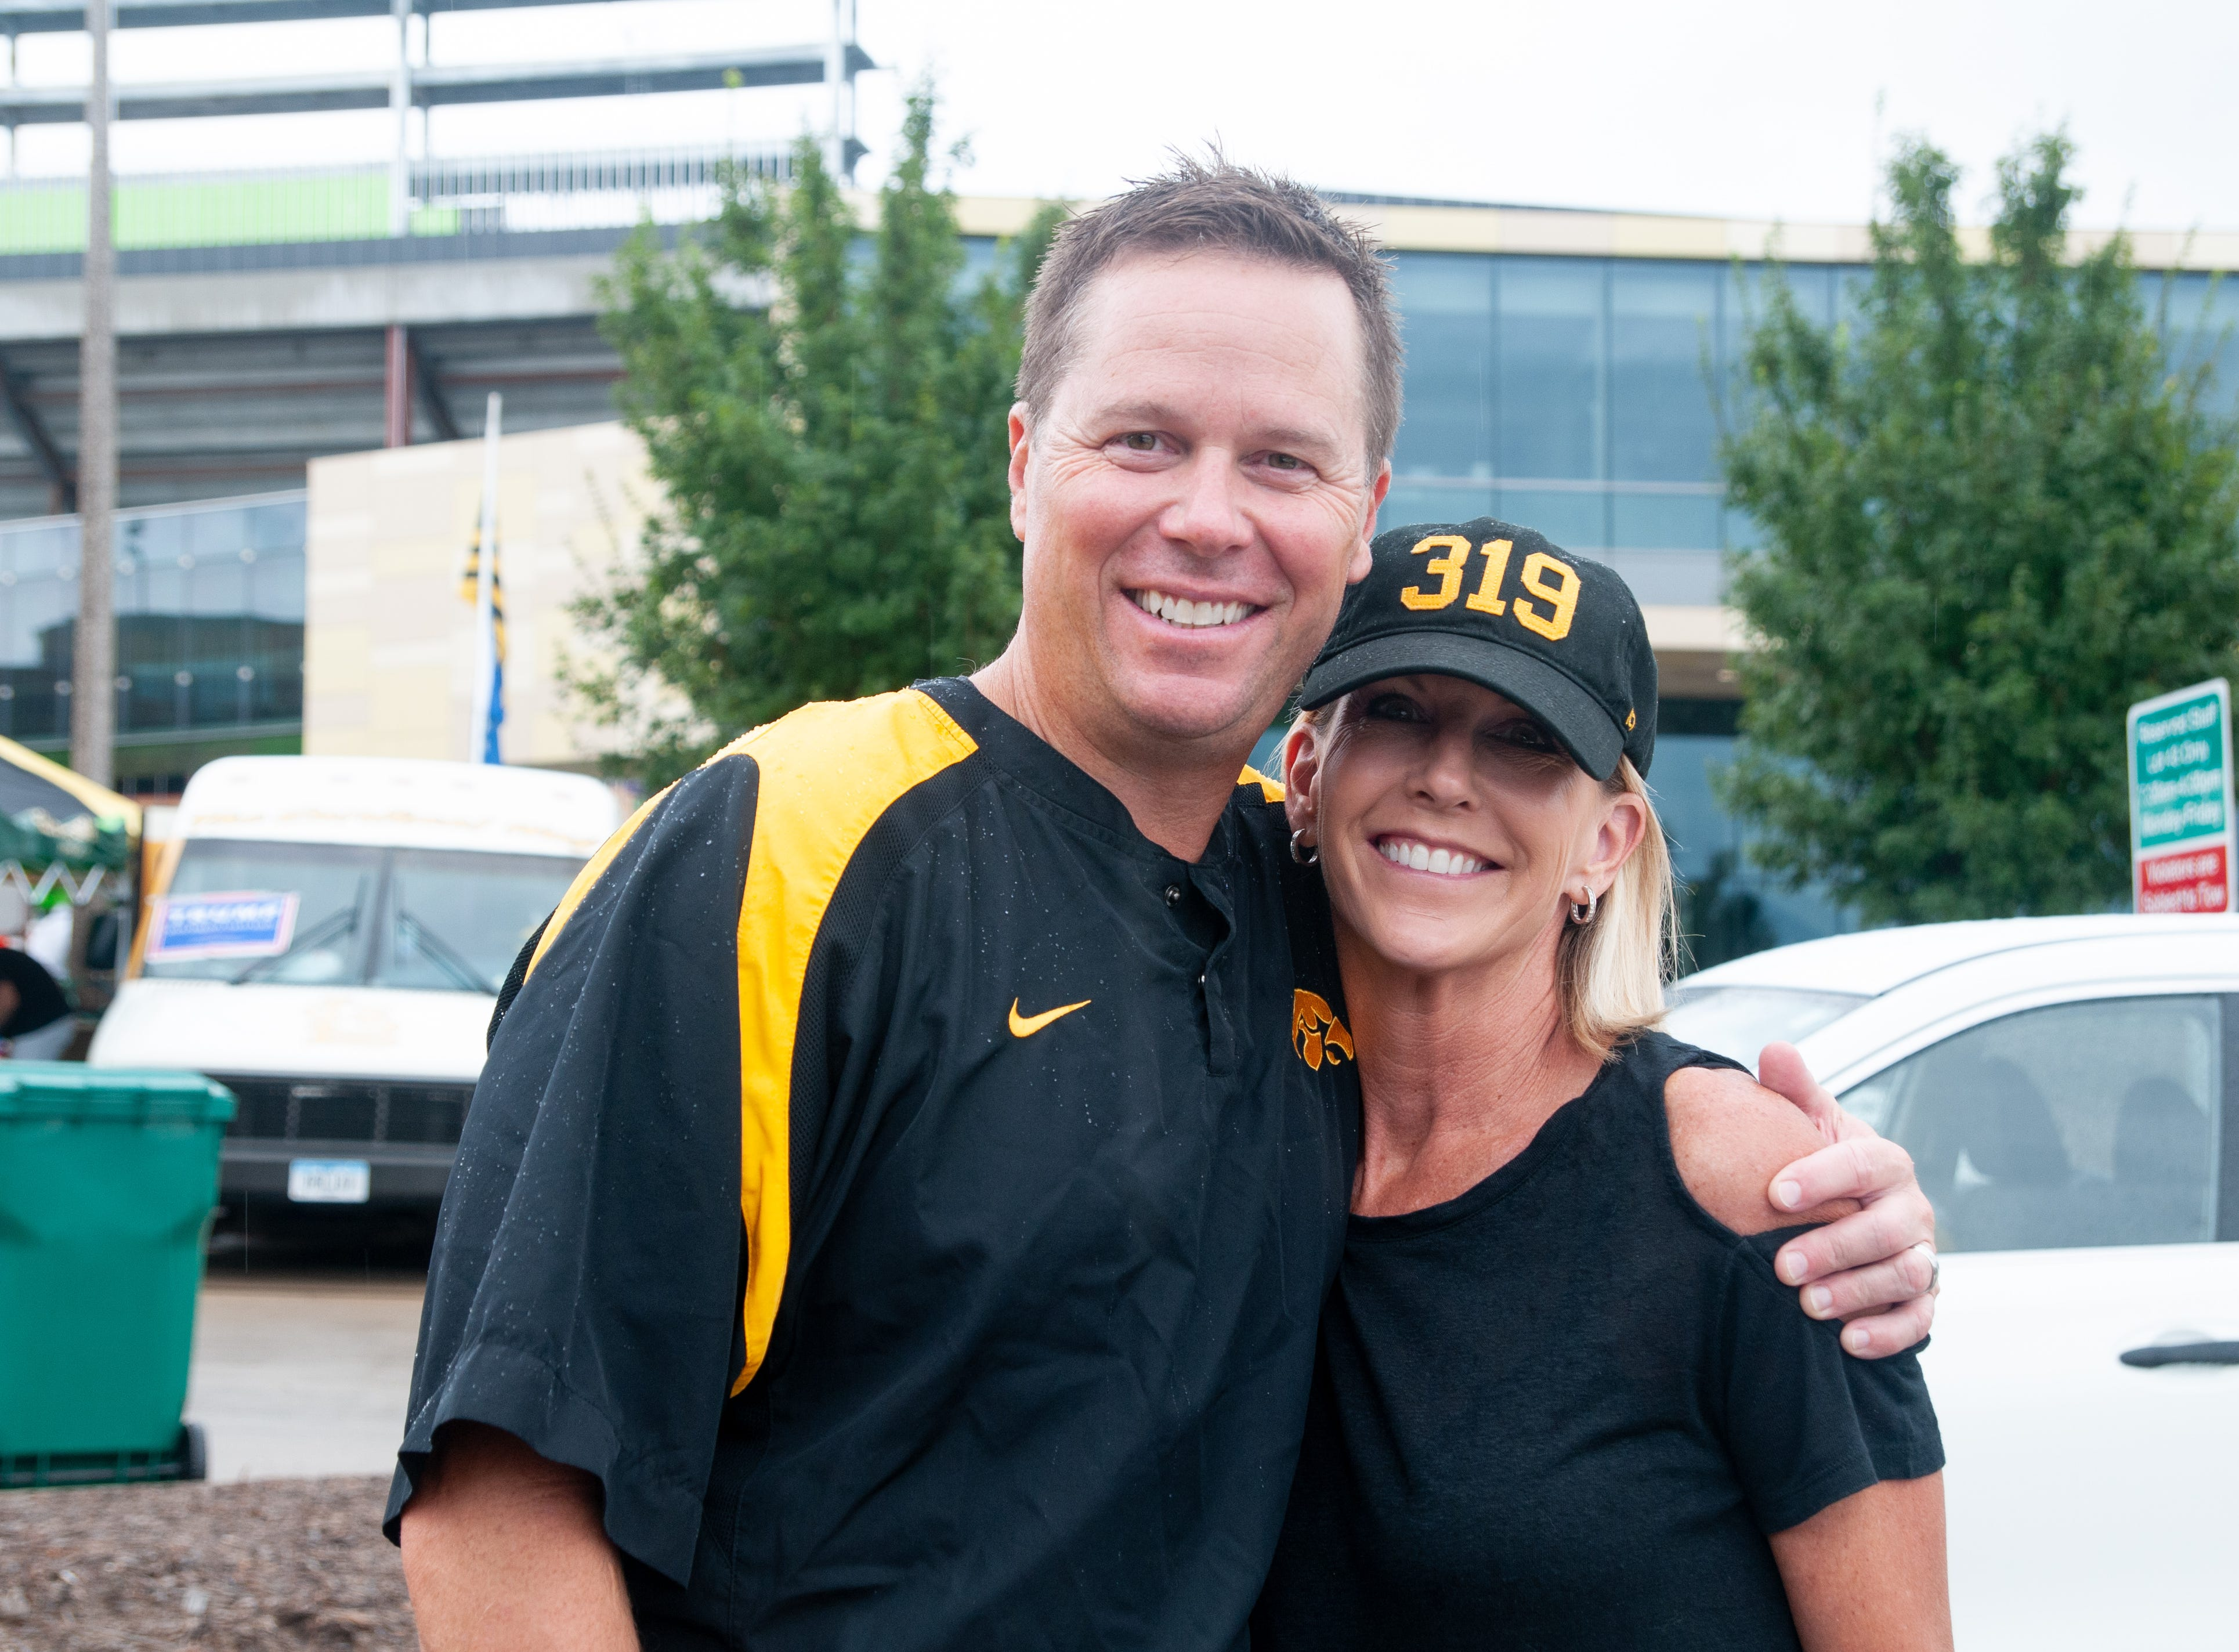 Matt, 49, (left), and Tracy Wiskus, 53, of Coralville, Saturday, Sept. 1, 2018, while tailgating before the Iowa game against Northern Illinois in Iowa City.